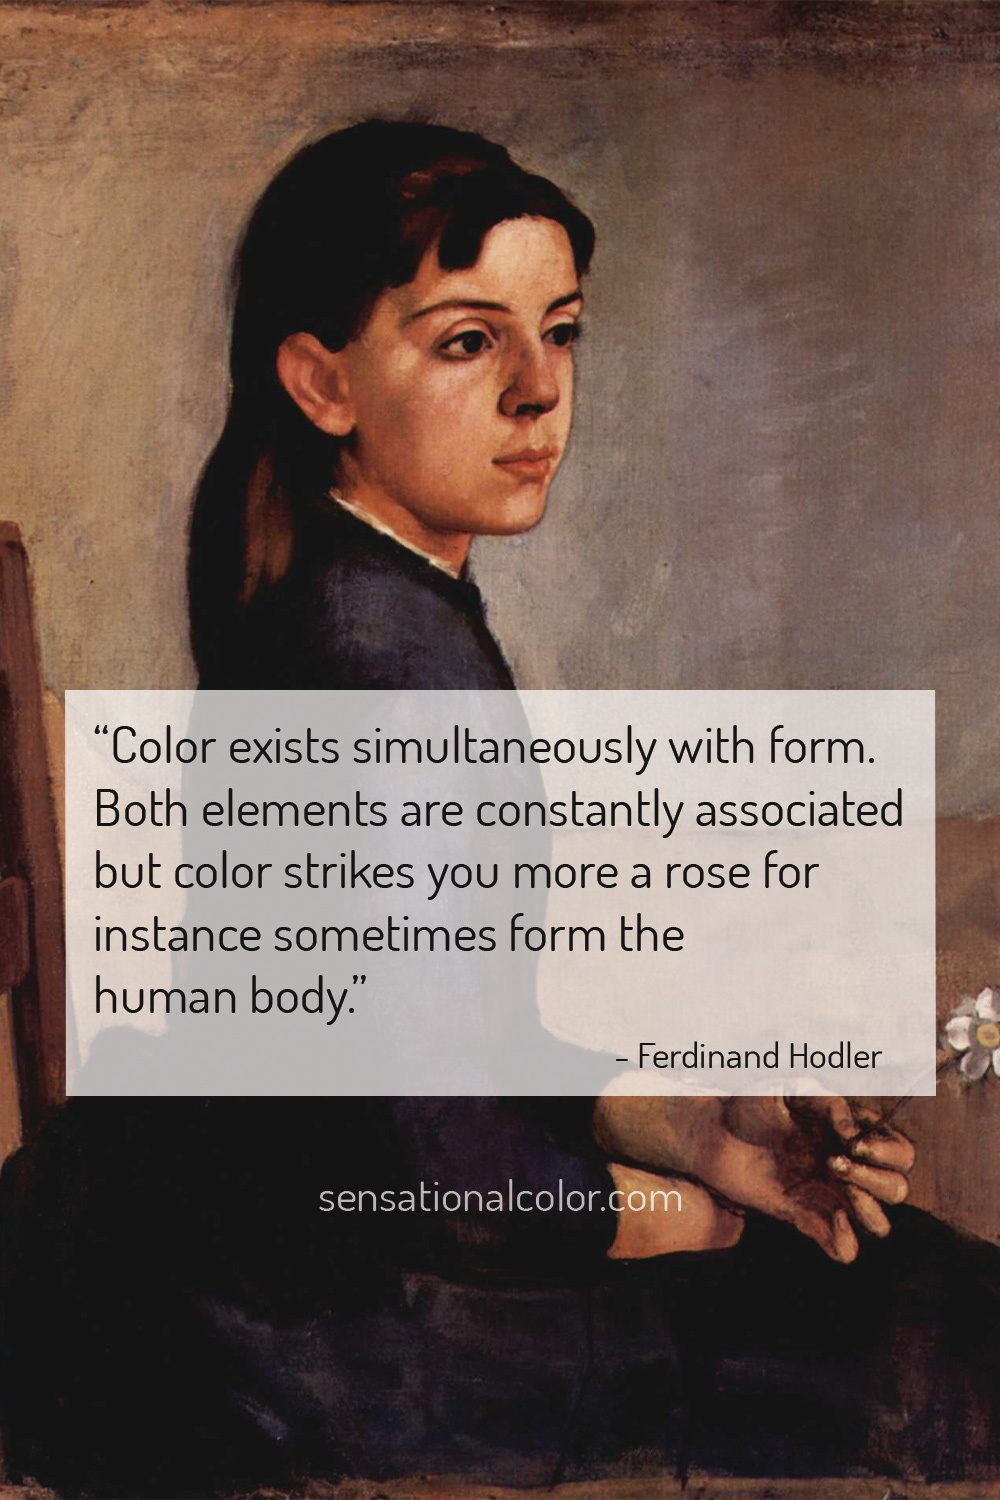 """Color exists simultaneously with form. Both elements are constantly associated but color strikes you more a rose for instance sometimes form the human body."" - Ferdinand Hodler"